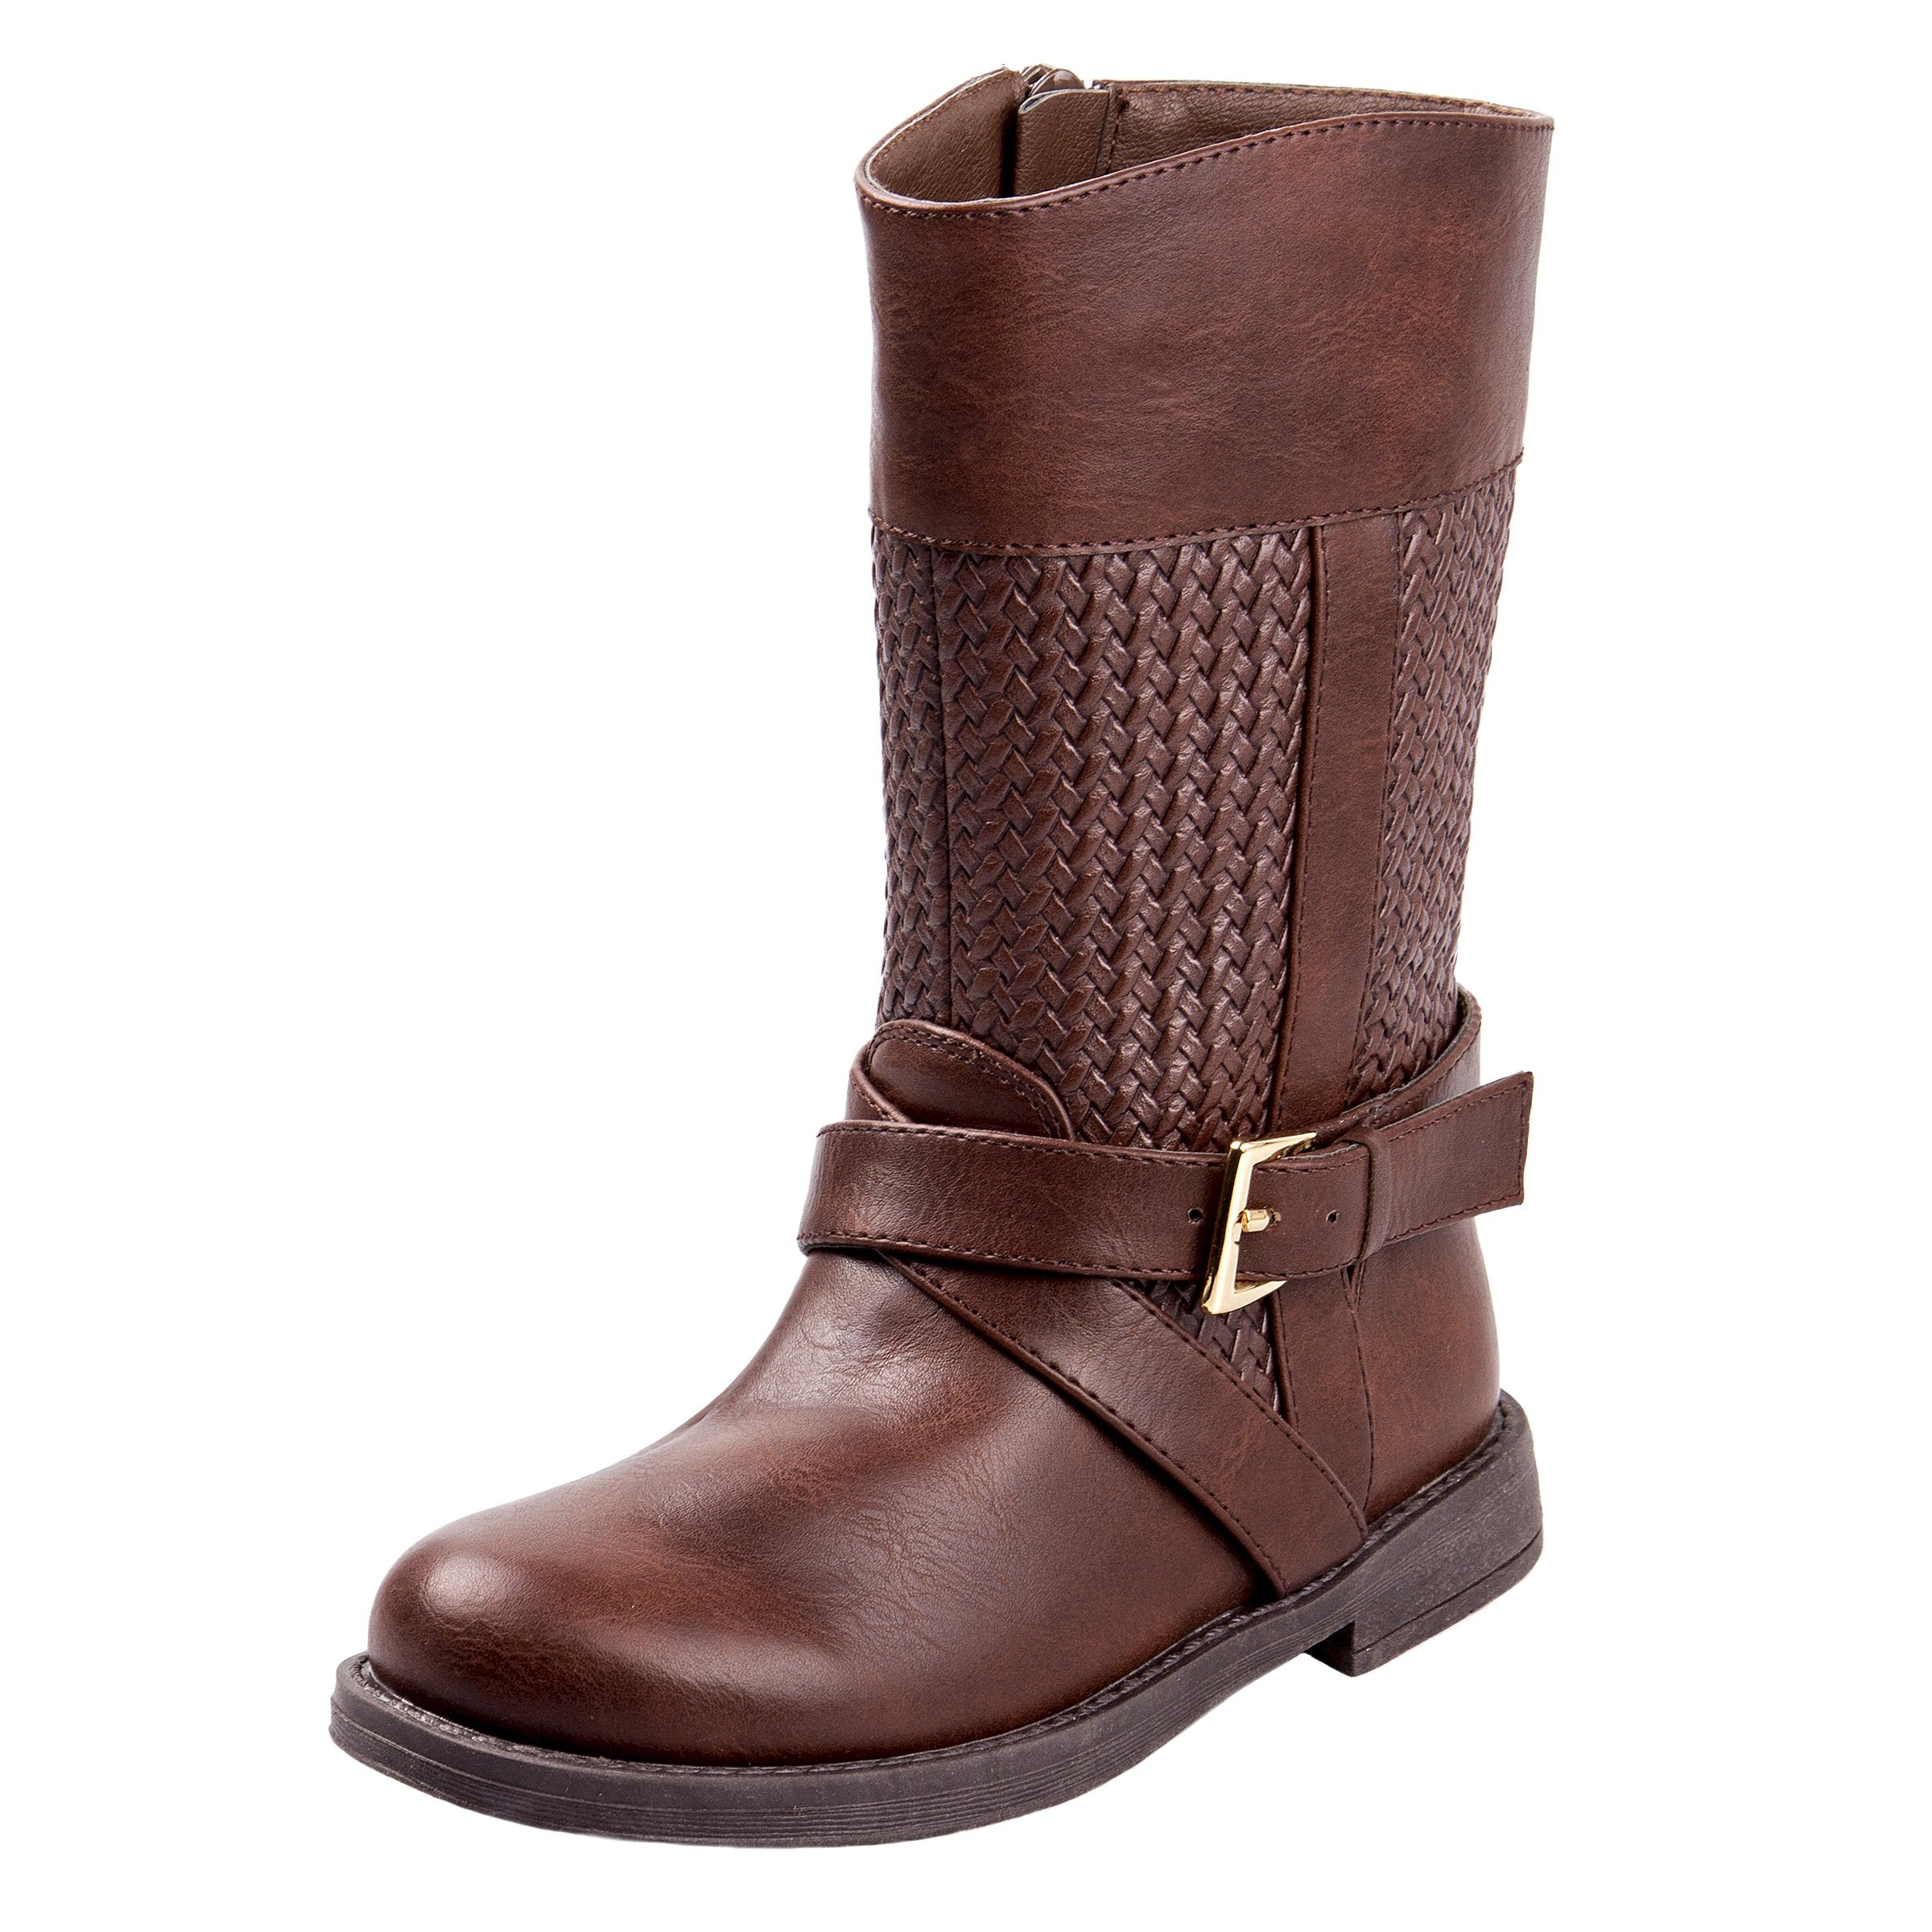 Laura Ashely Toddler Girls Woven Calf Length Riding Boot, Brown, Size 6 US Toddler'